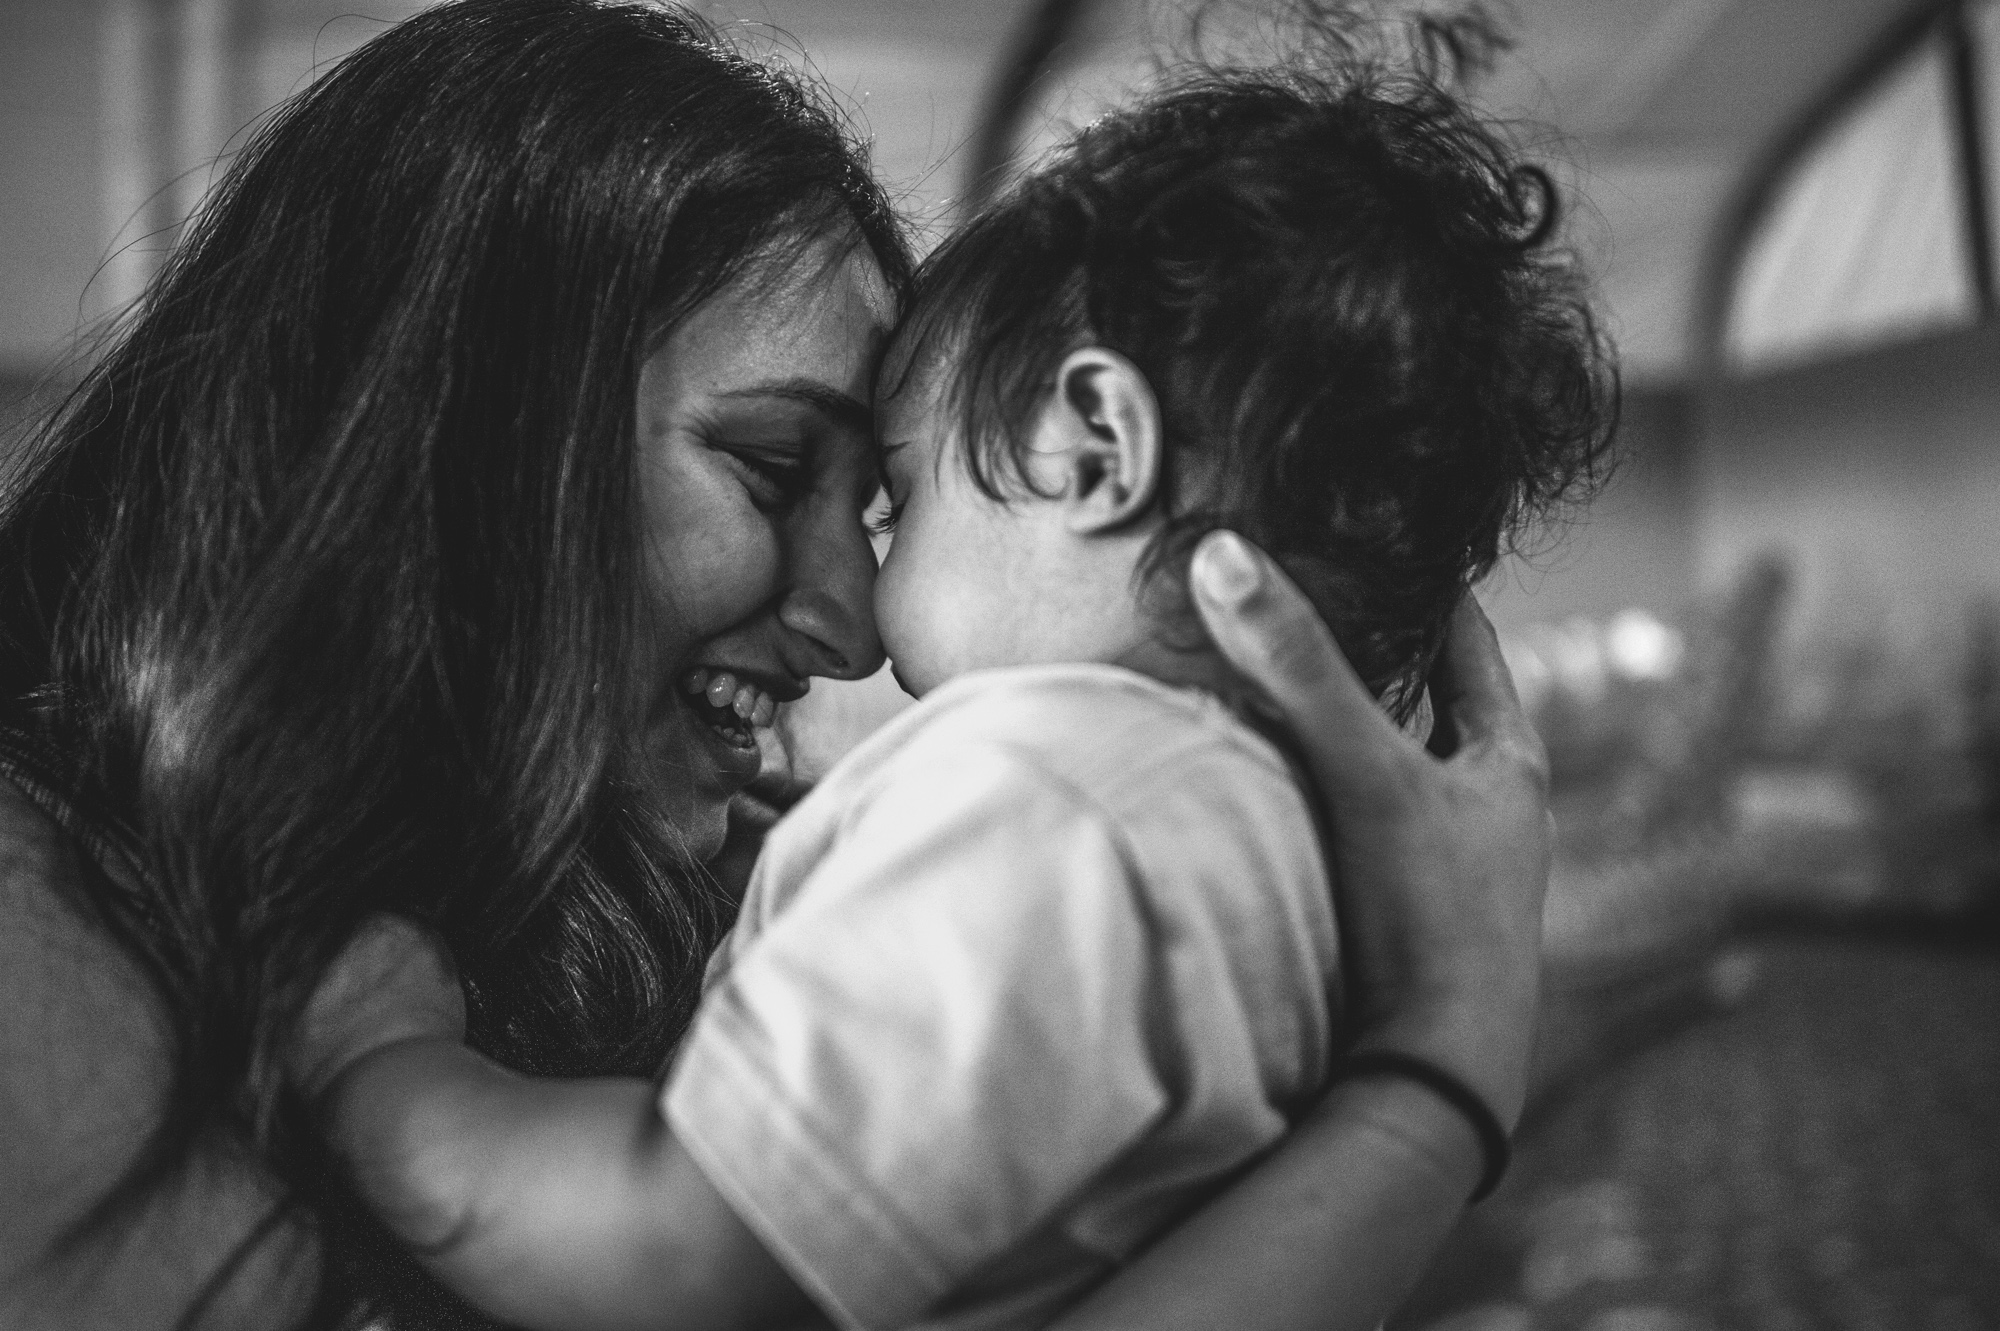 Mother puts her forehead to her baby boy's head on his one year birthday, black and white